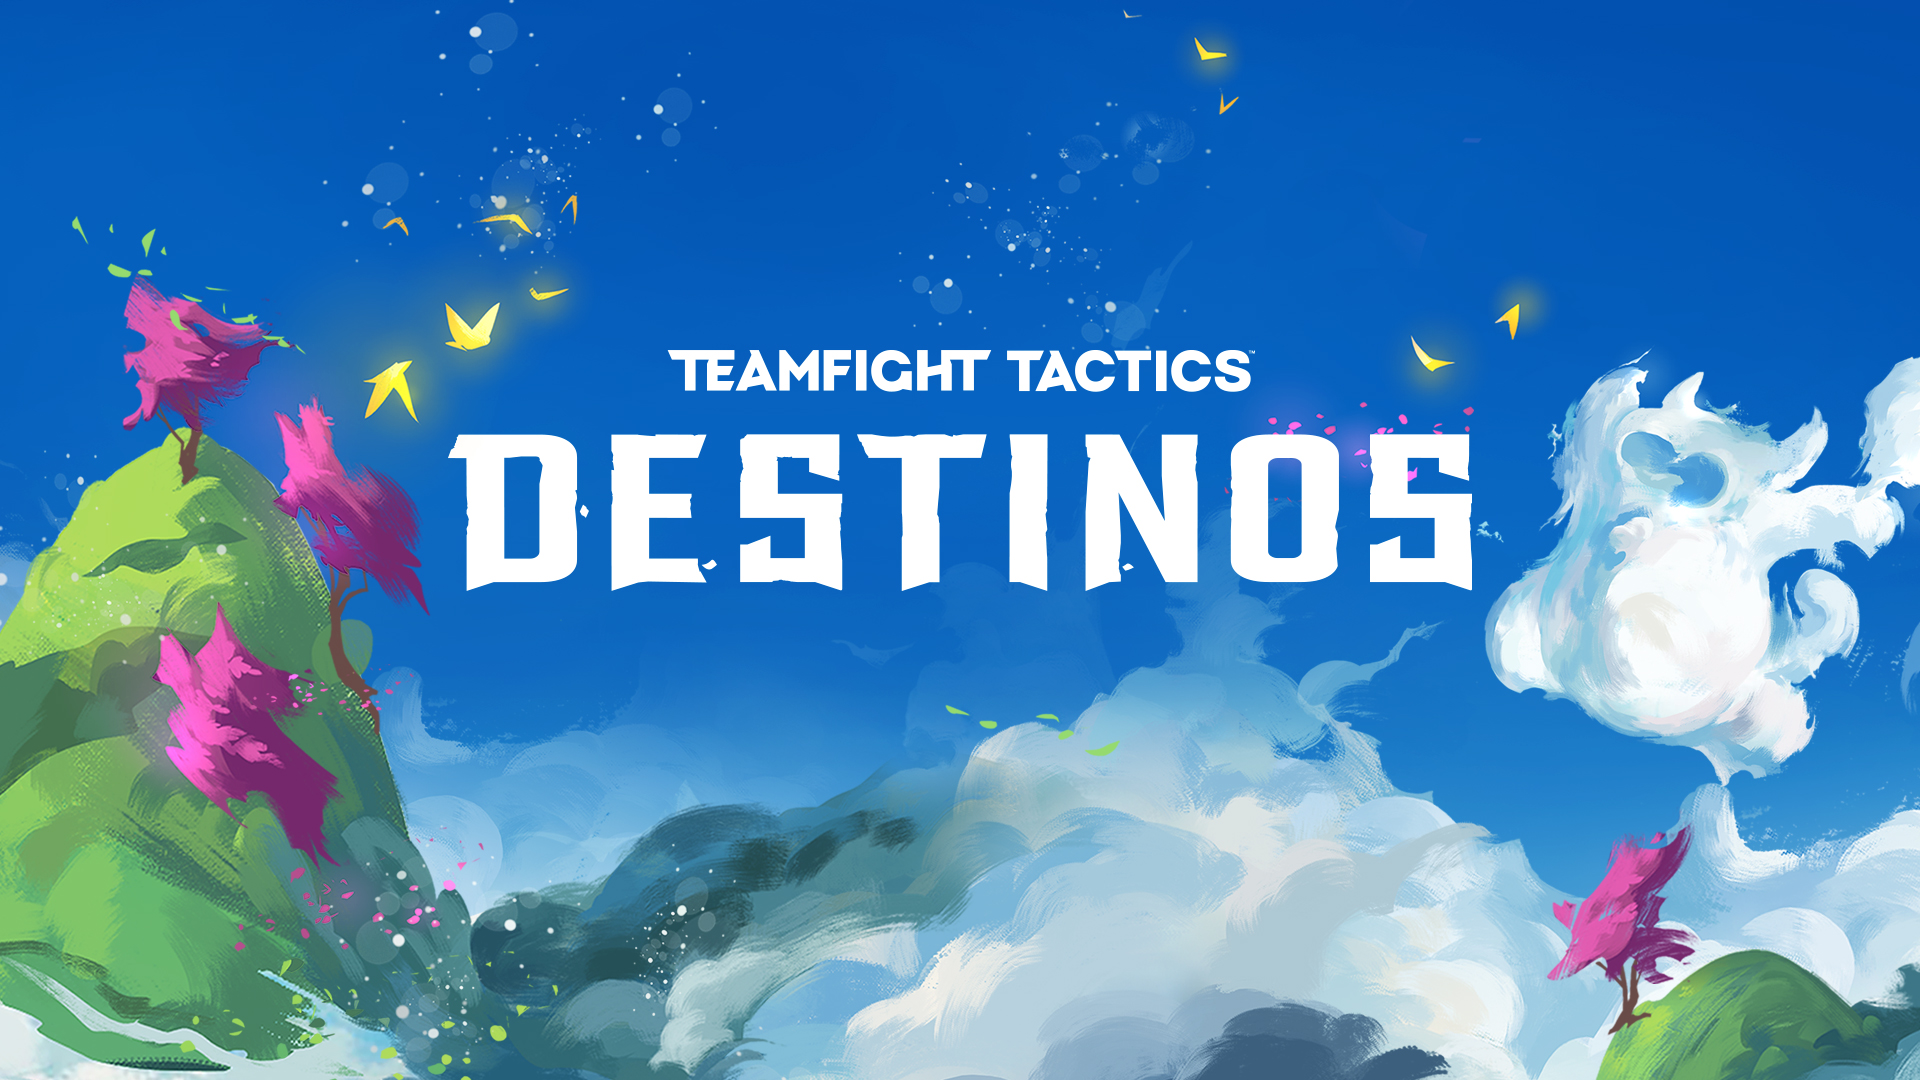 TFT: Riot anuncia novo set de Teamfight Tactics: 'Destinos'